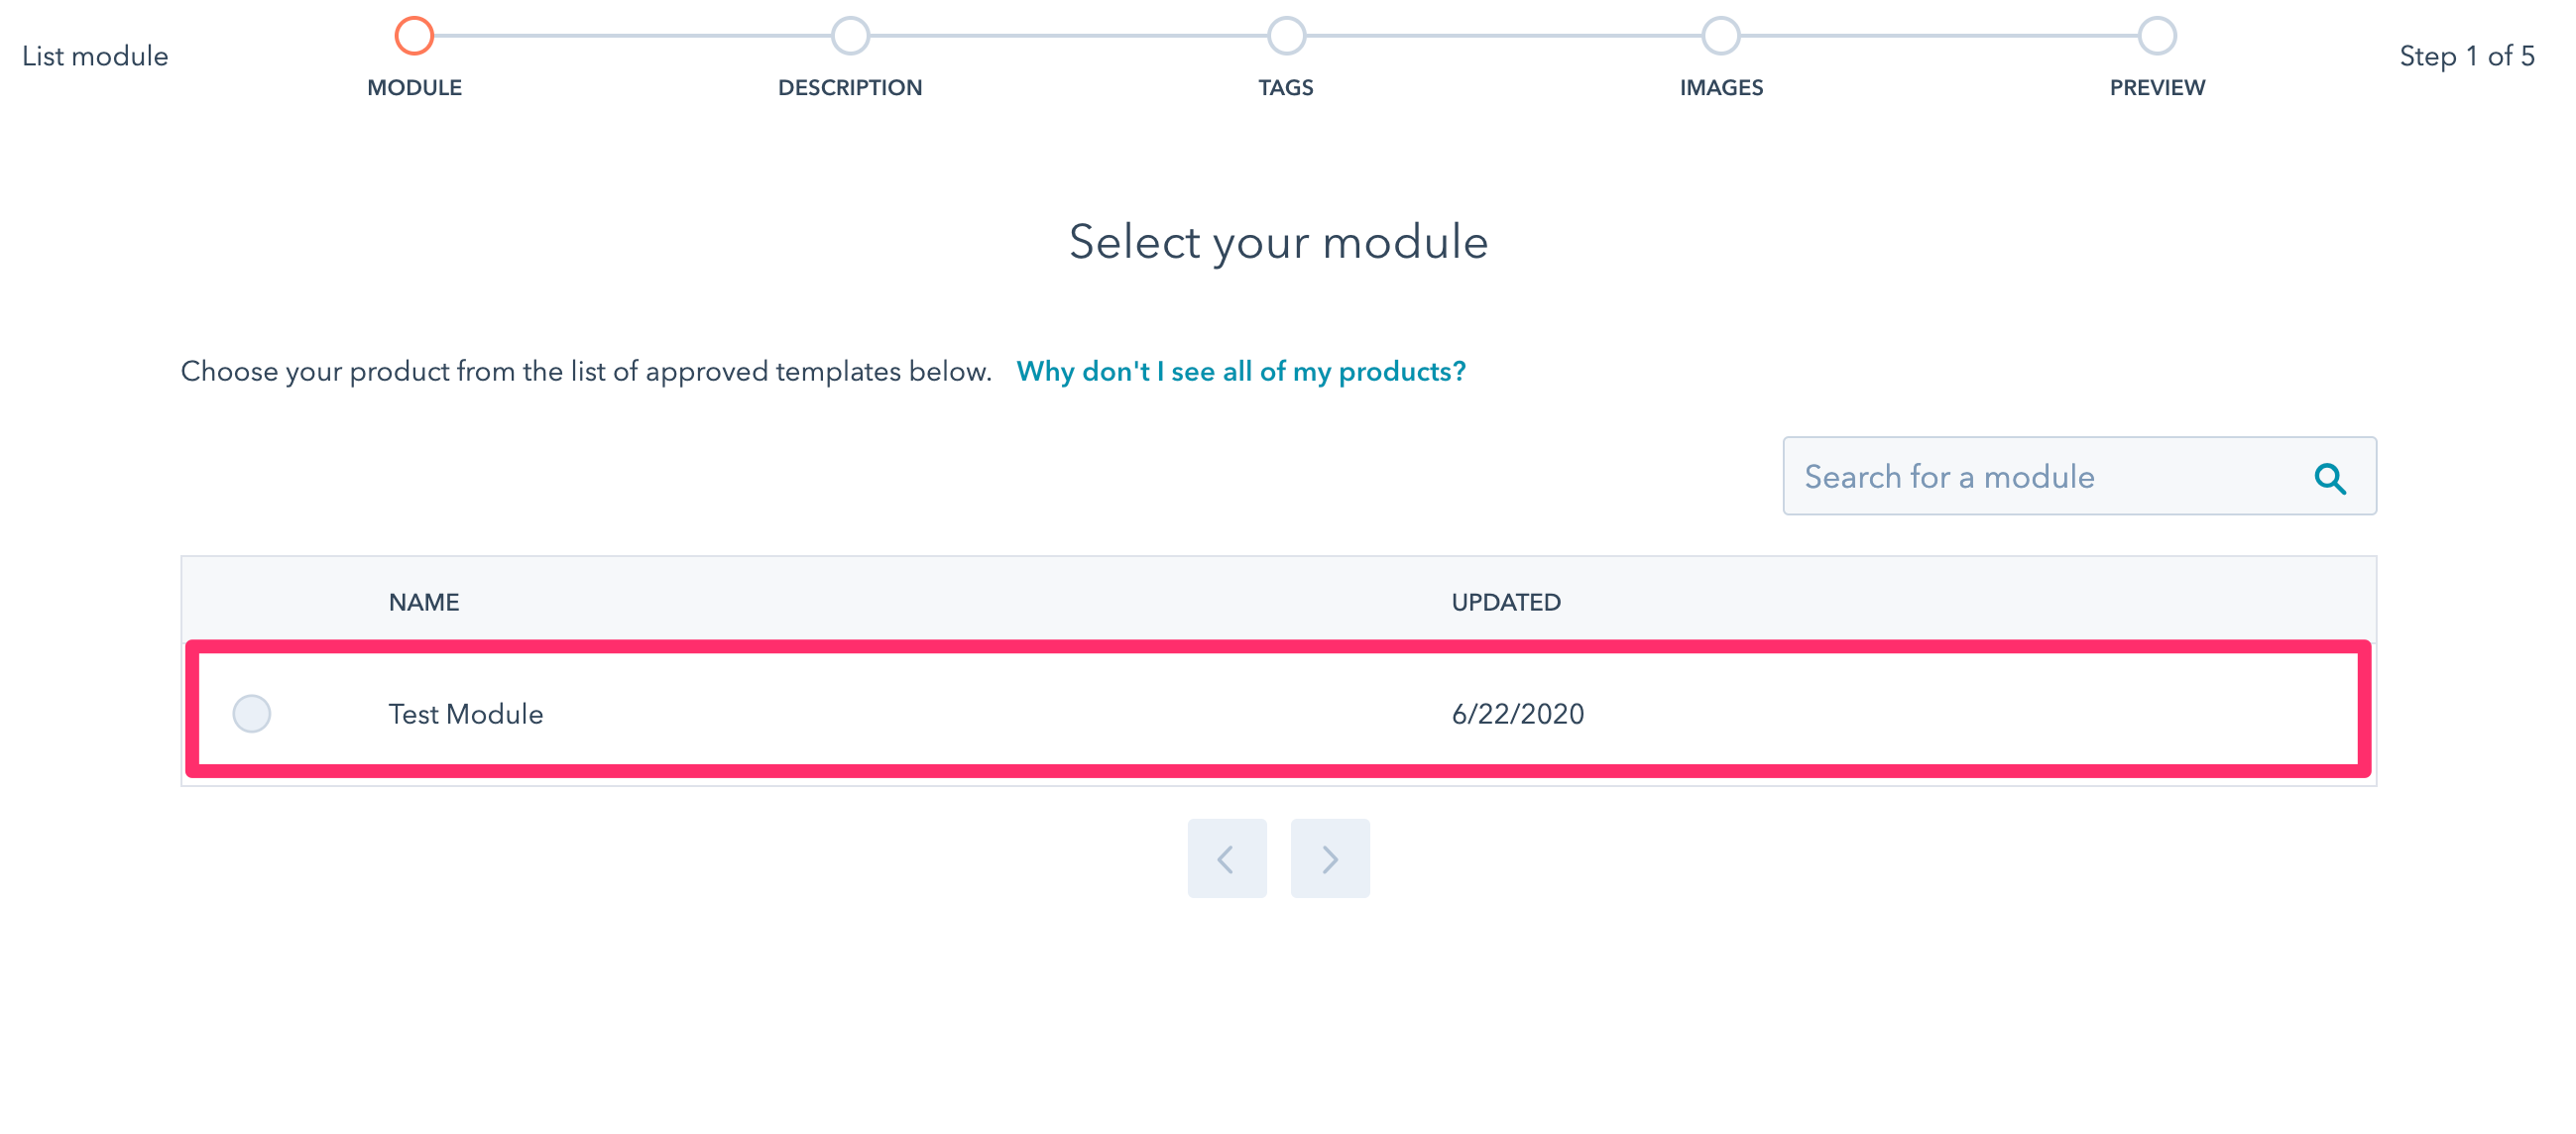 Select your asset from the product list